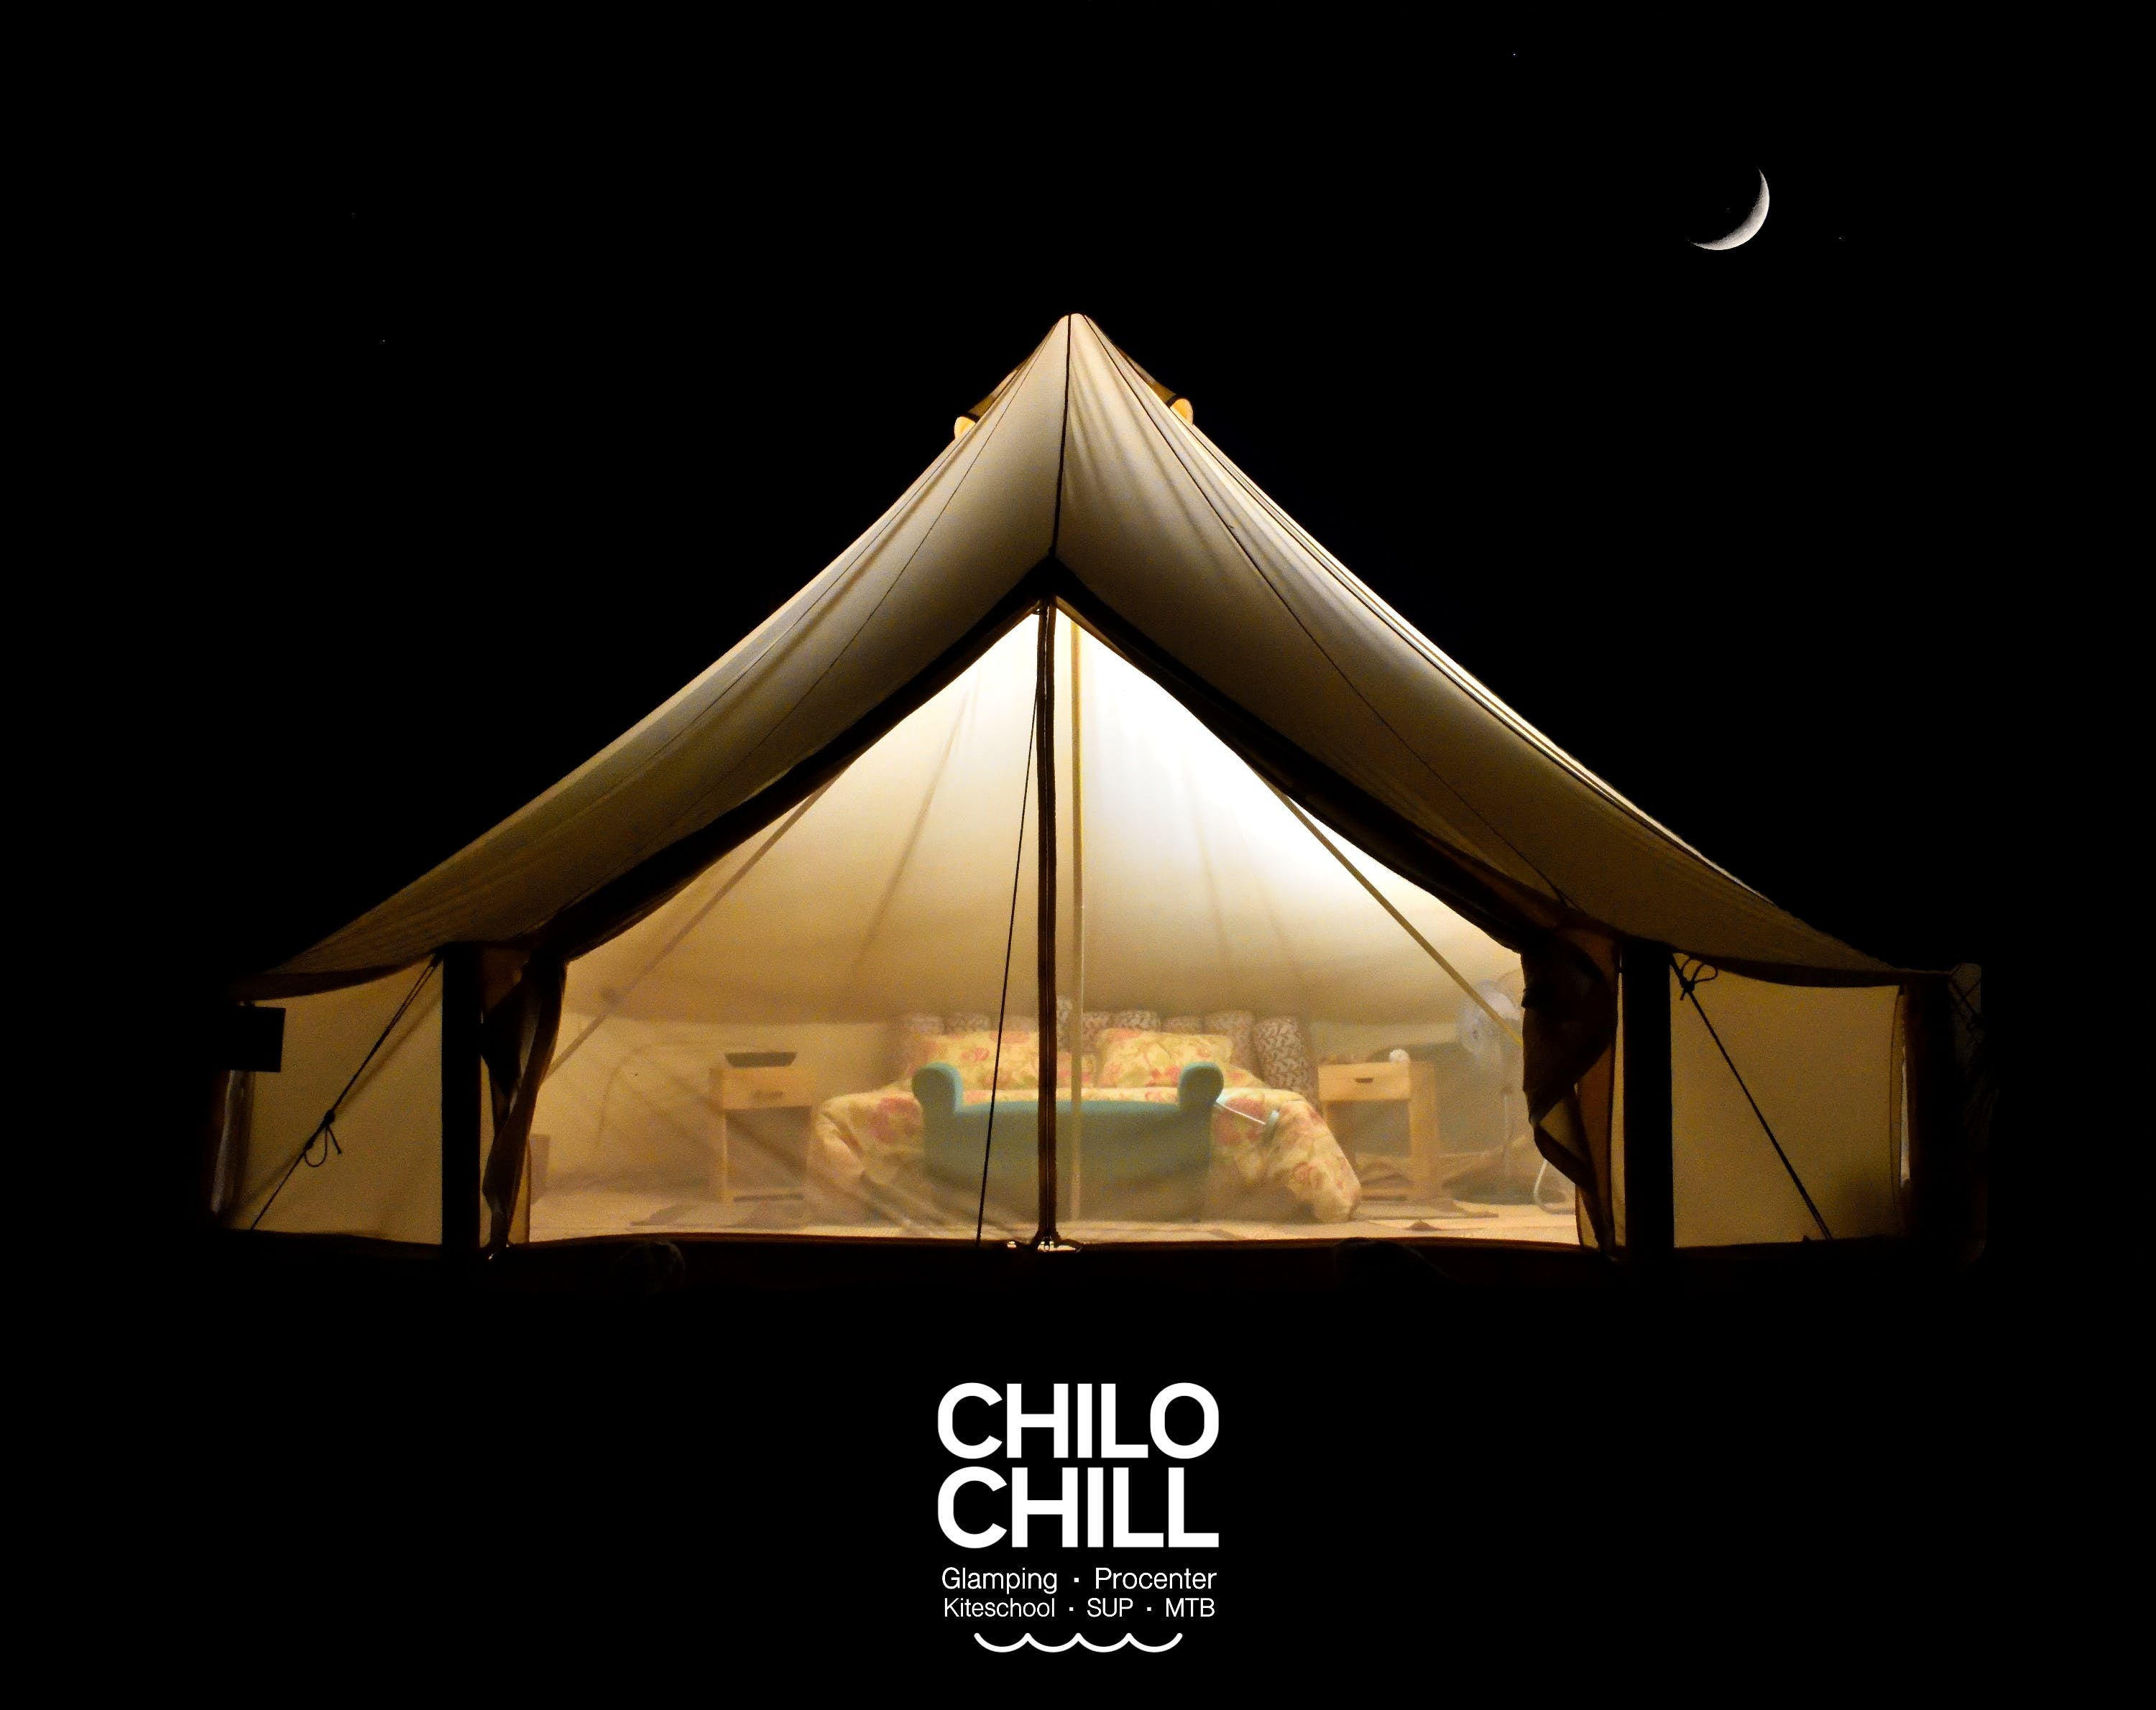 Chilo Chill Beach Resort by night. it is called baja nights.